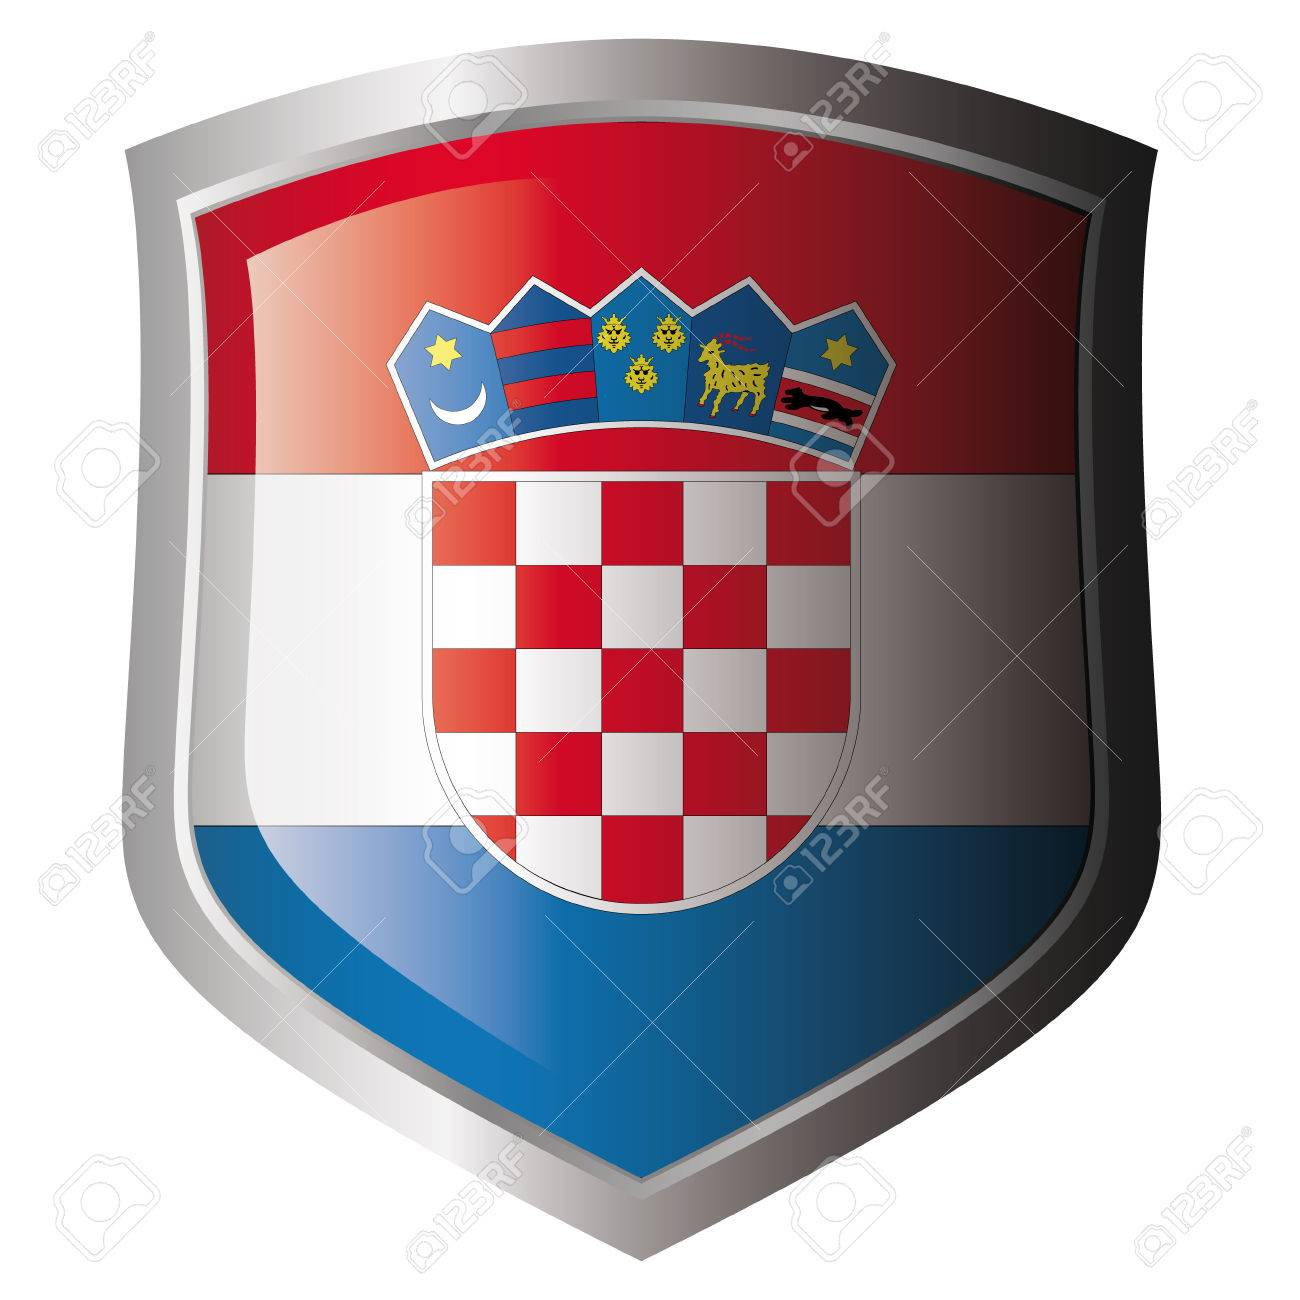 croatia flag on metal shiny shield. Collection of flags on shield against white background. Isolated object. Stock Vector - 5872007